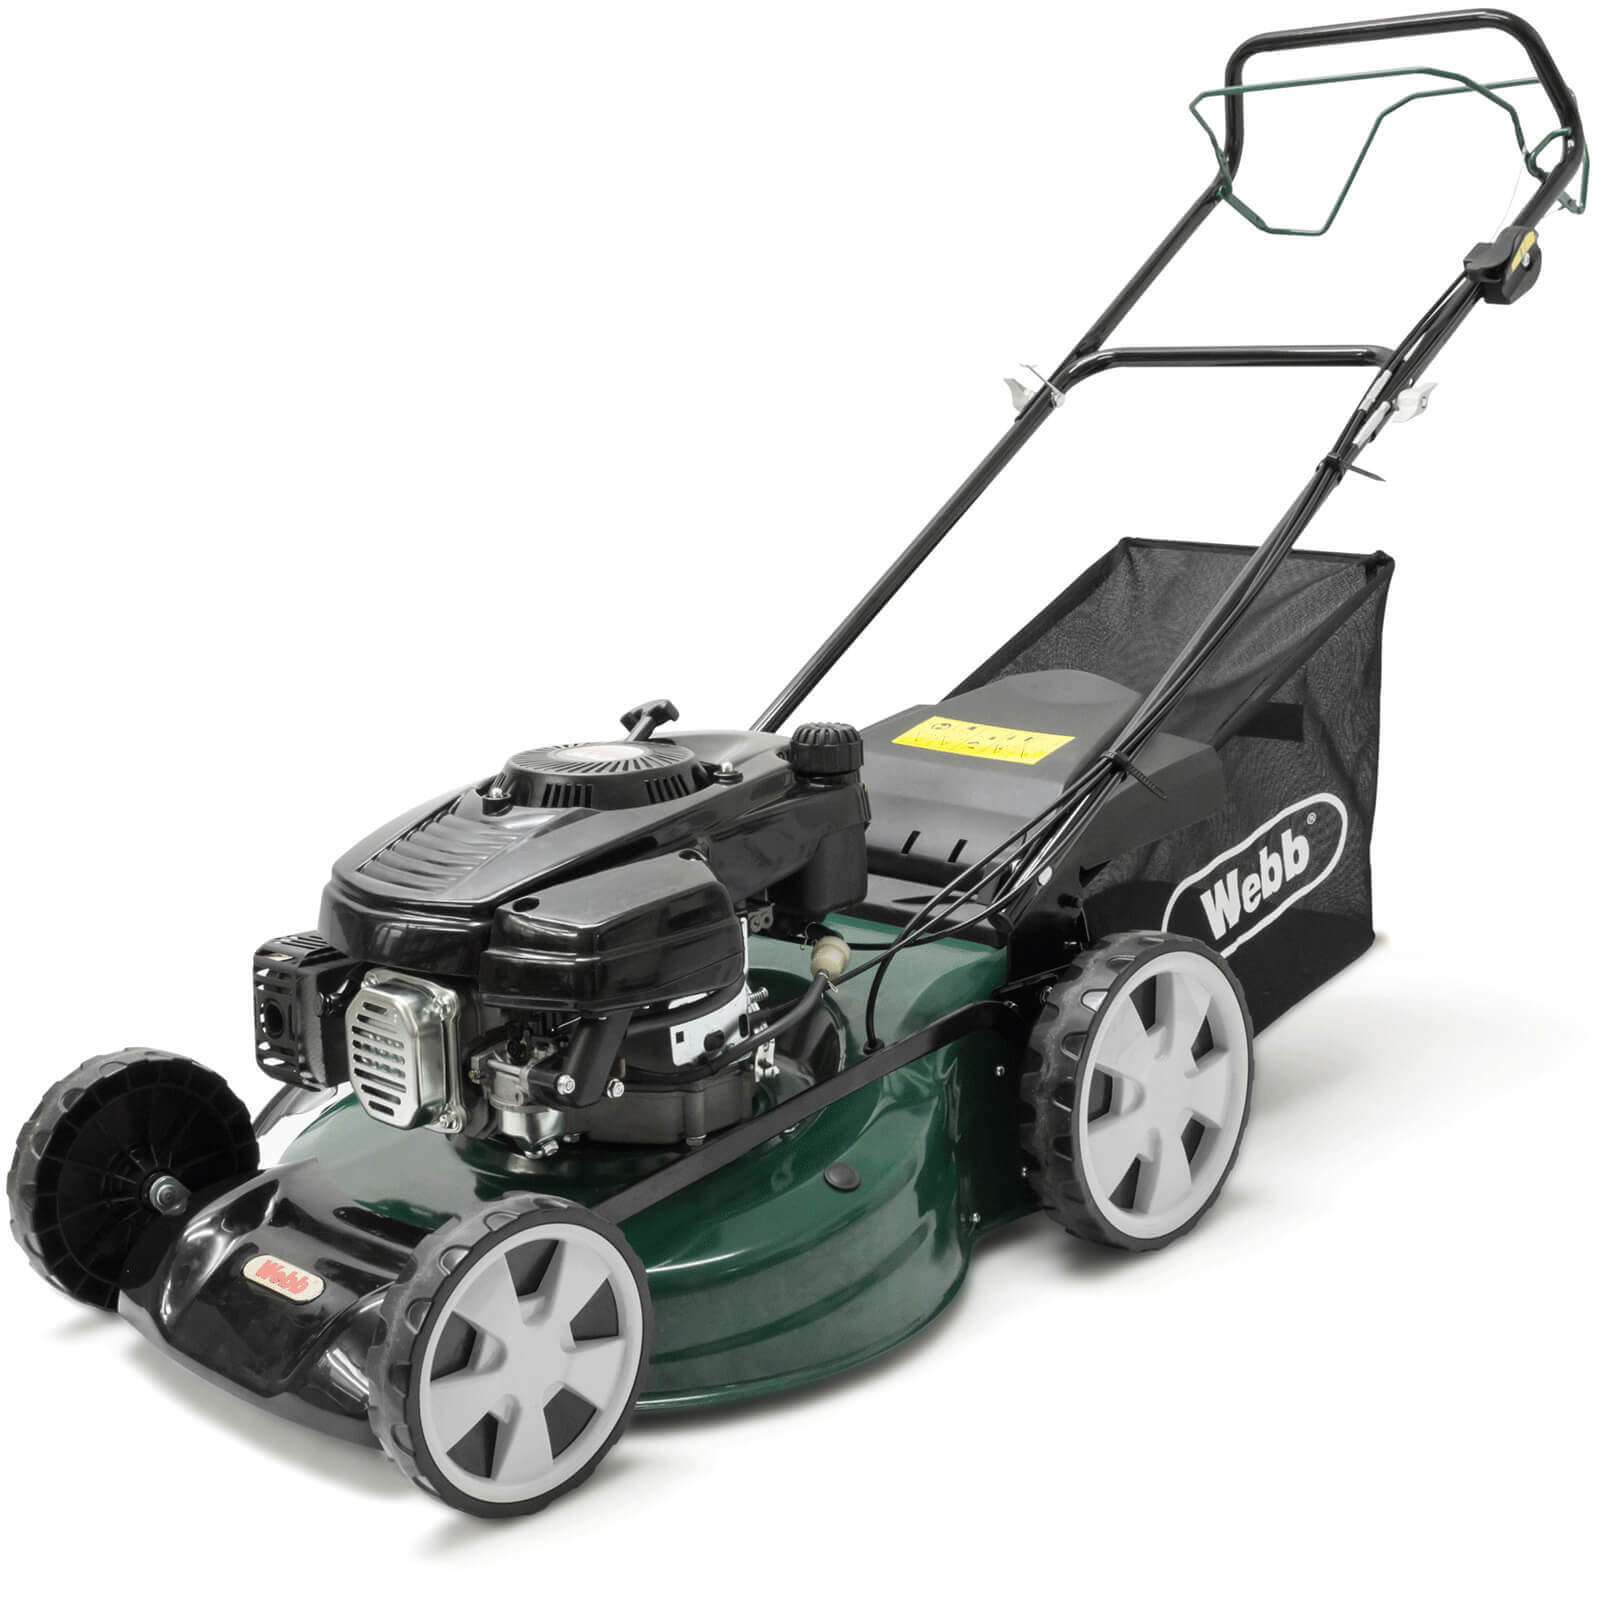 Image of Webb R51SP Classic Self Propelled Petrol Rotary Lawnmower 510mm